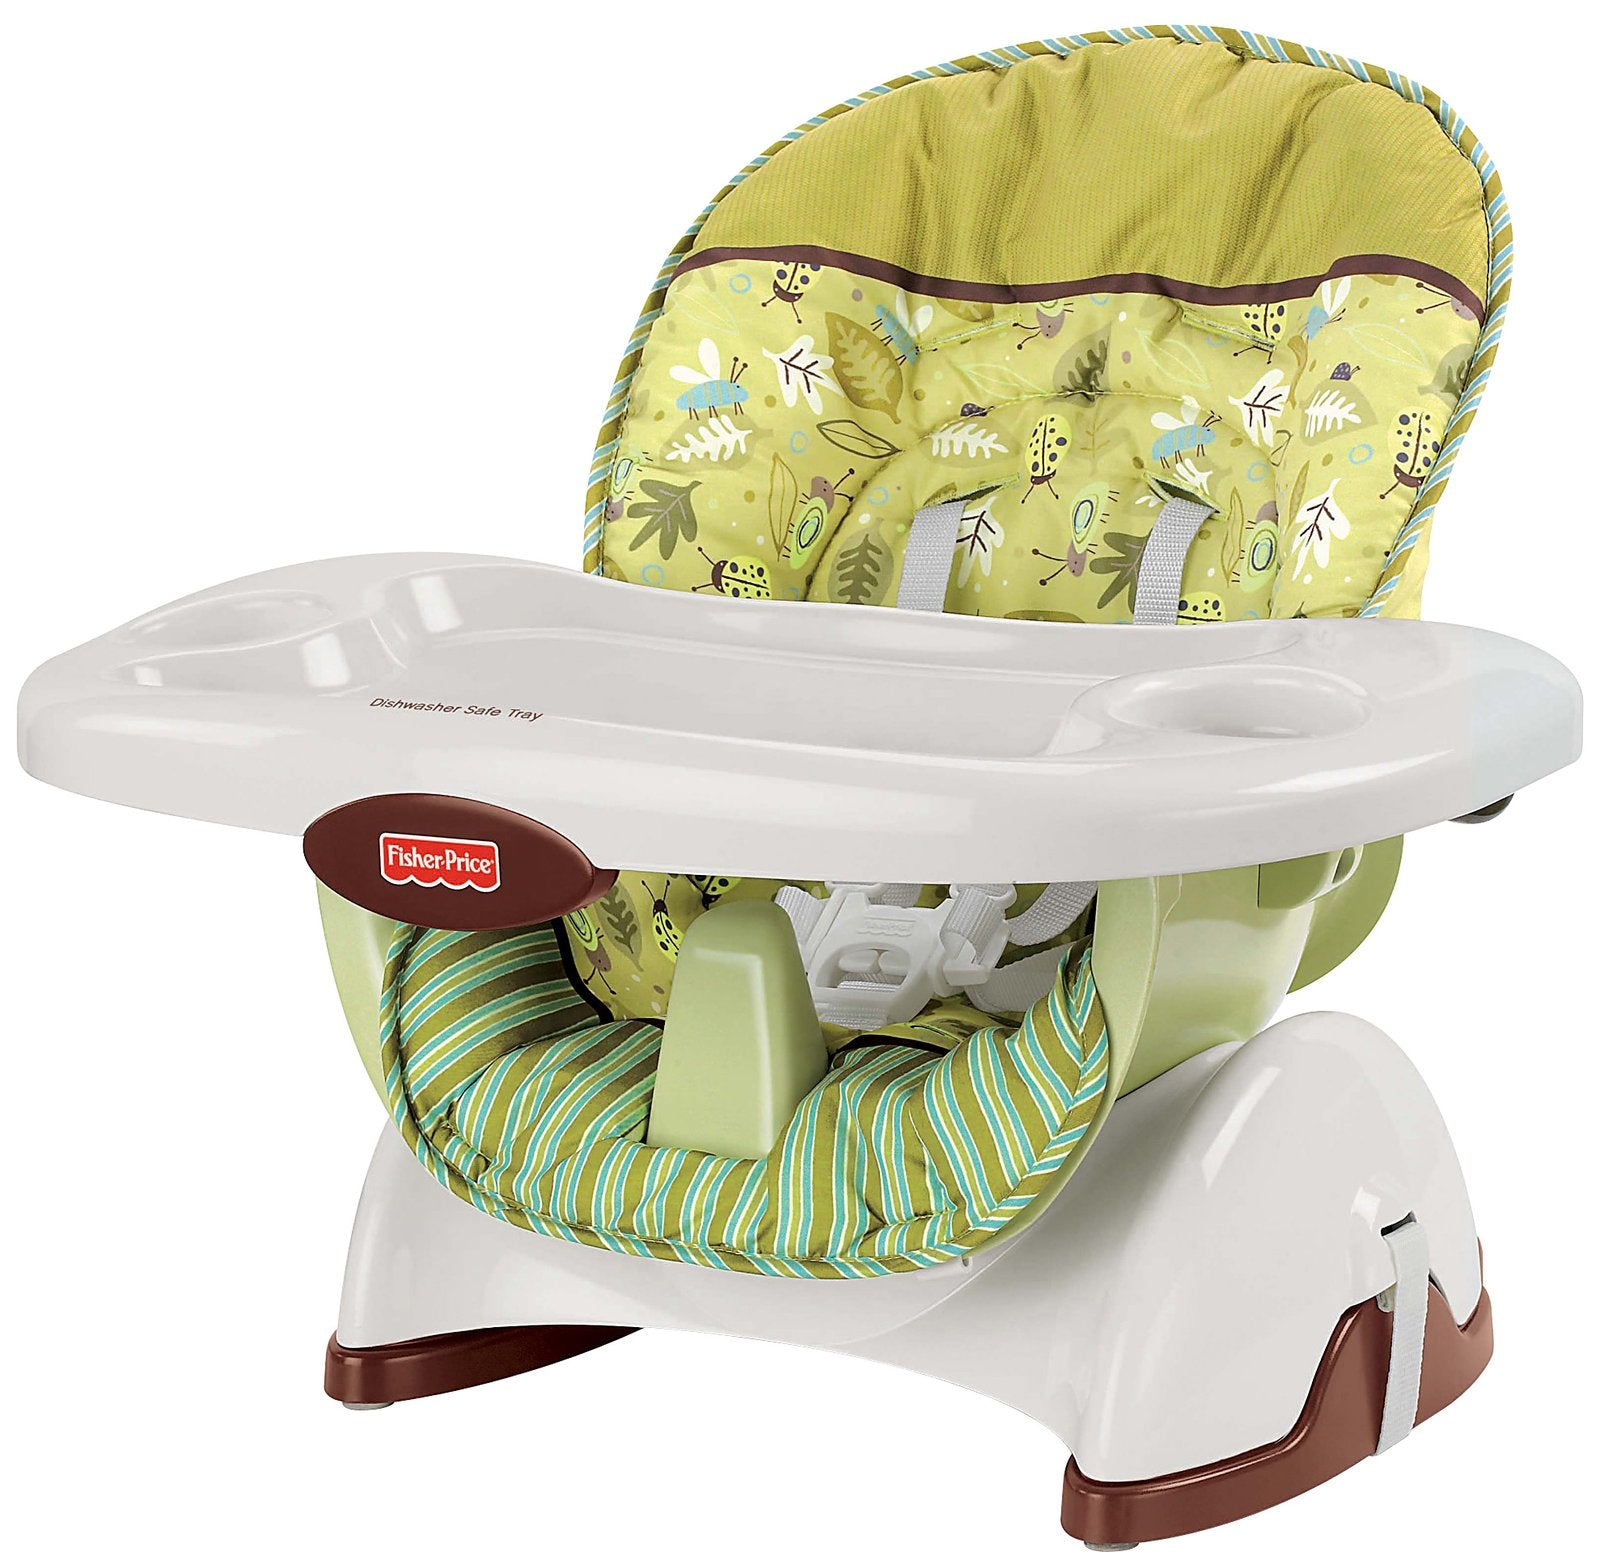 5 Reasons why you should a trusted brand baby high chair in